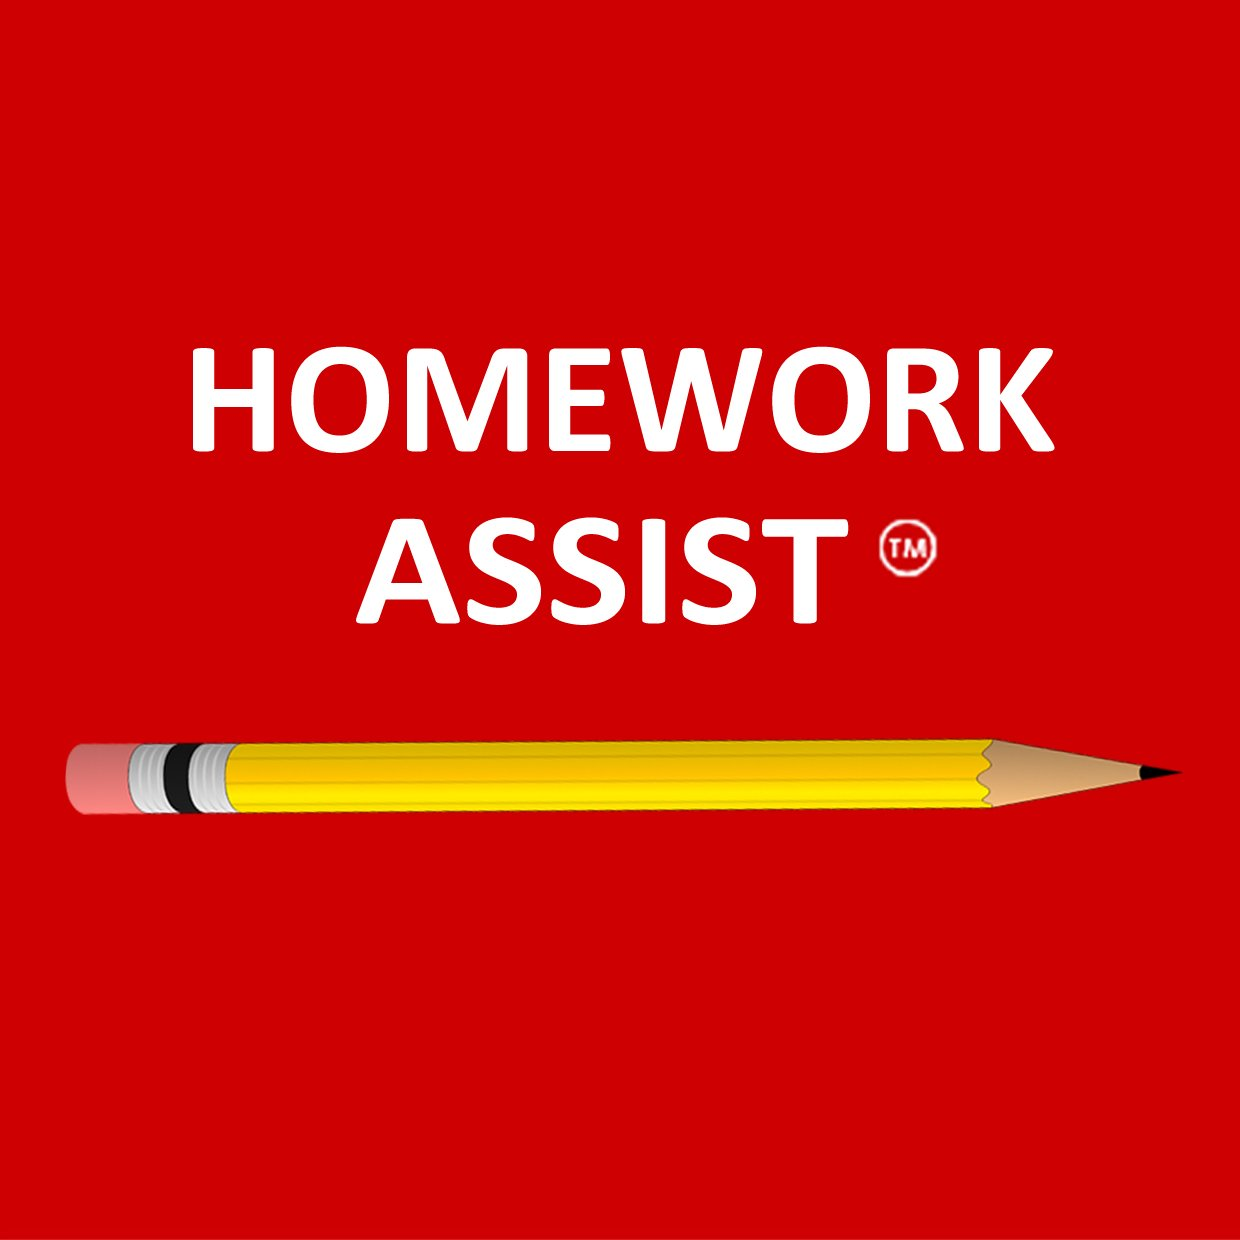 homework assist